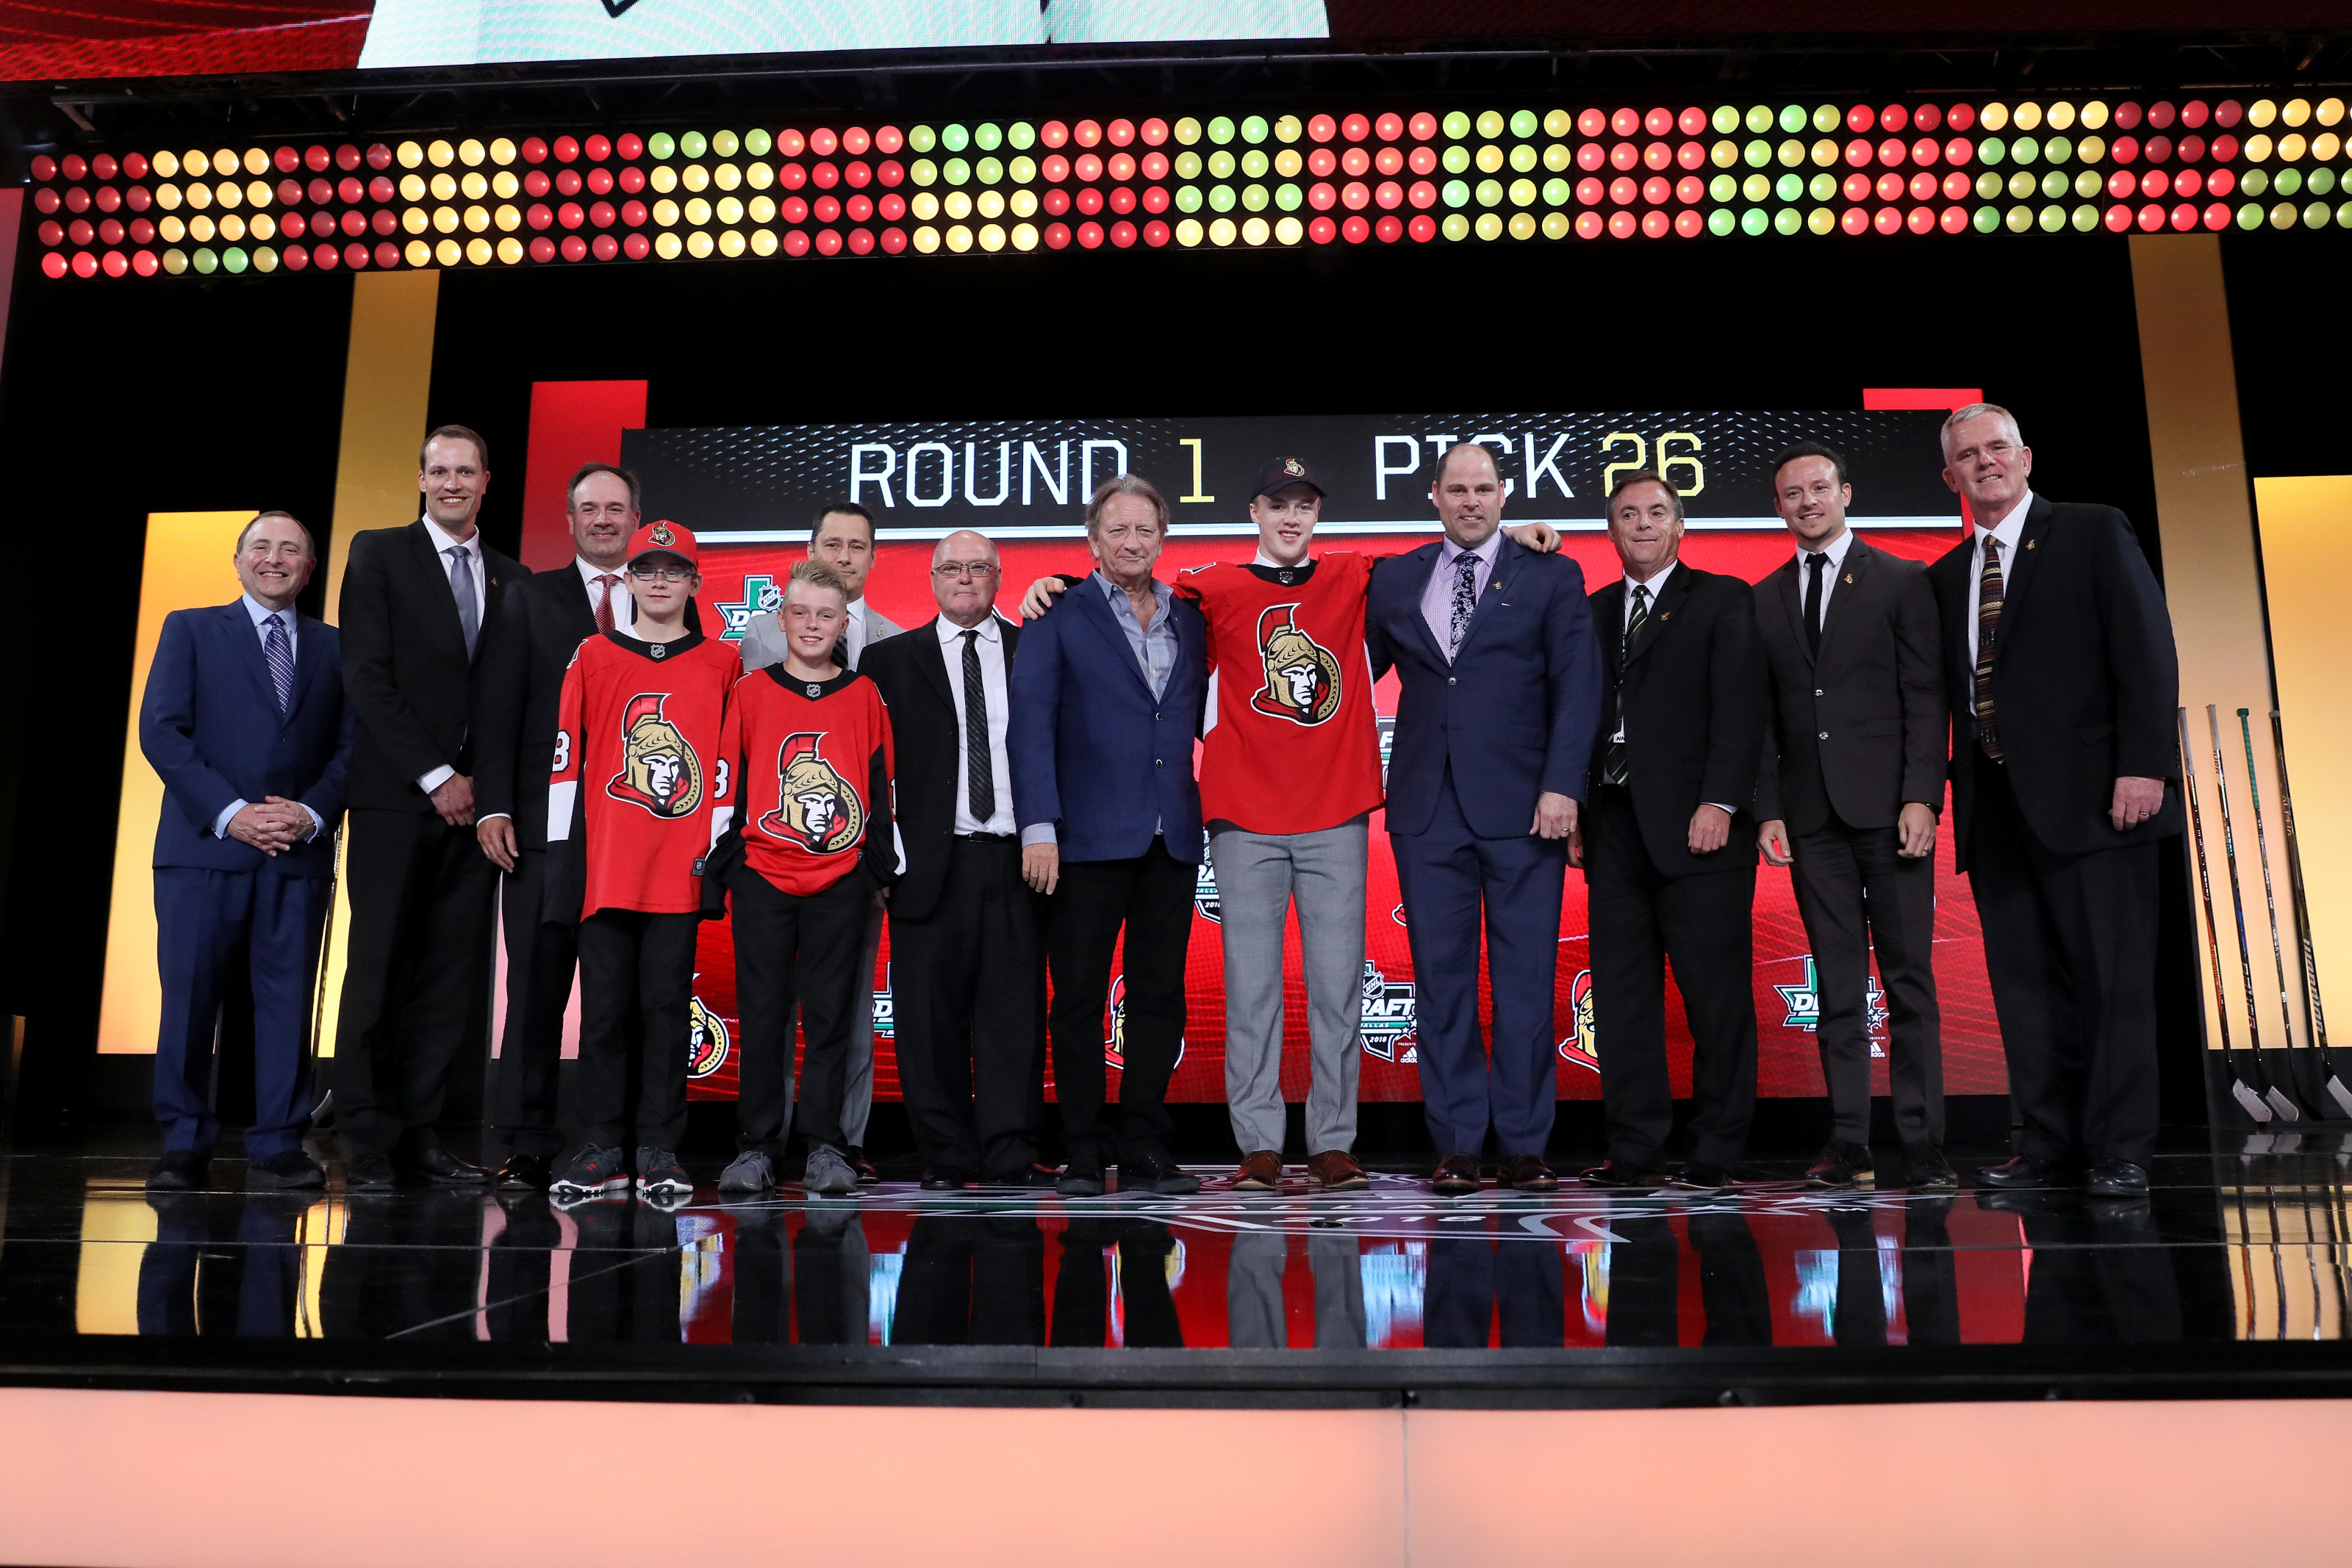 Ranking The Top 31 Prospects In The 2020 Nhl Draft 5 Lucas Raymond